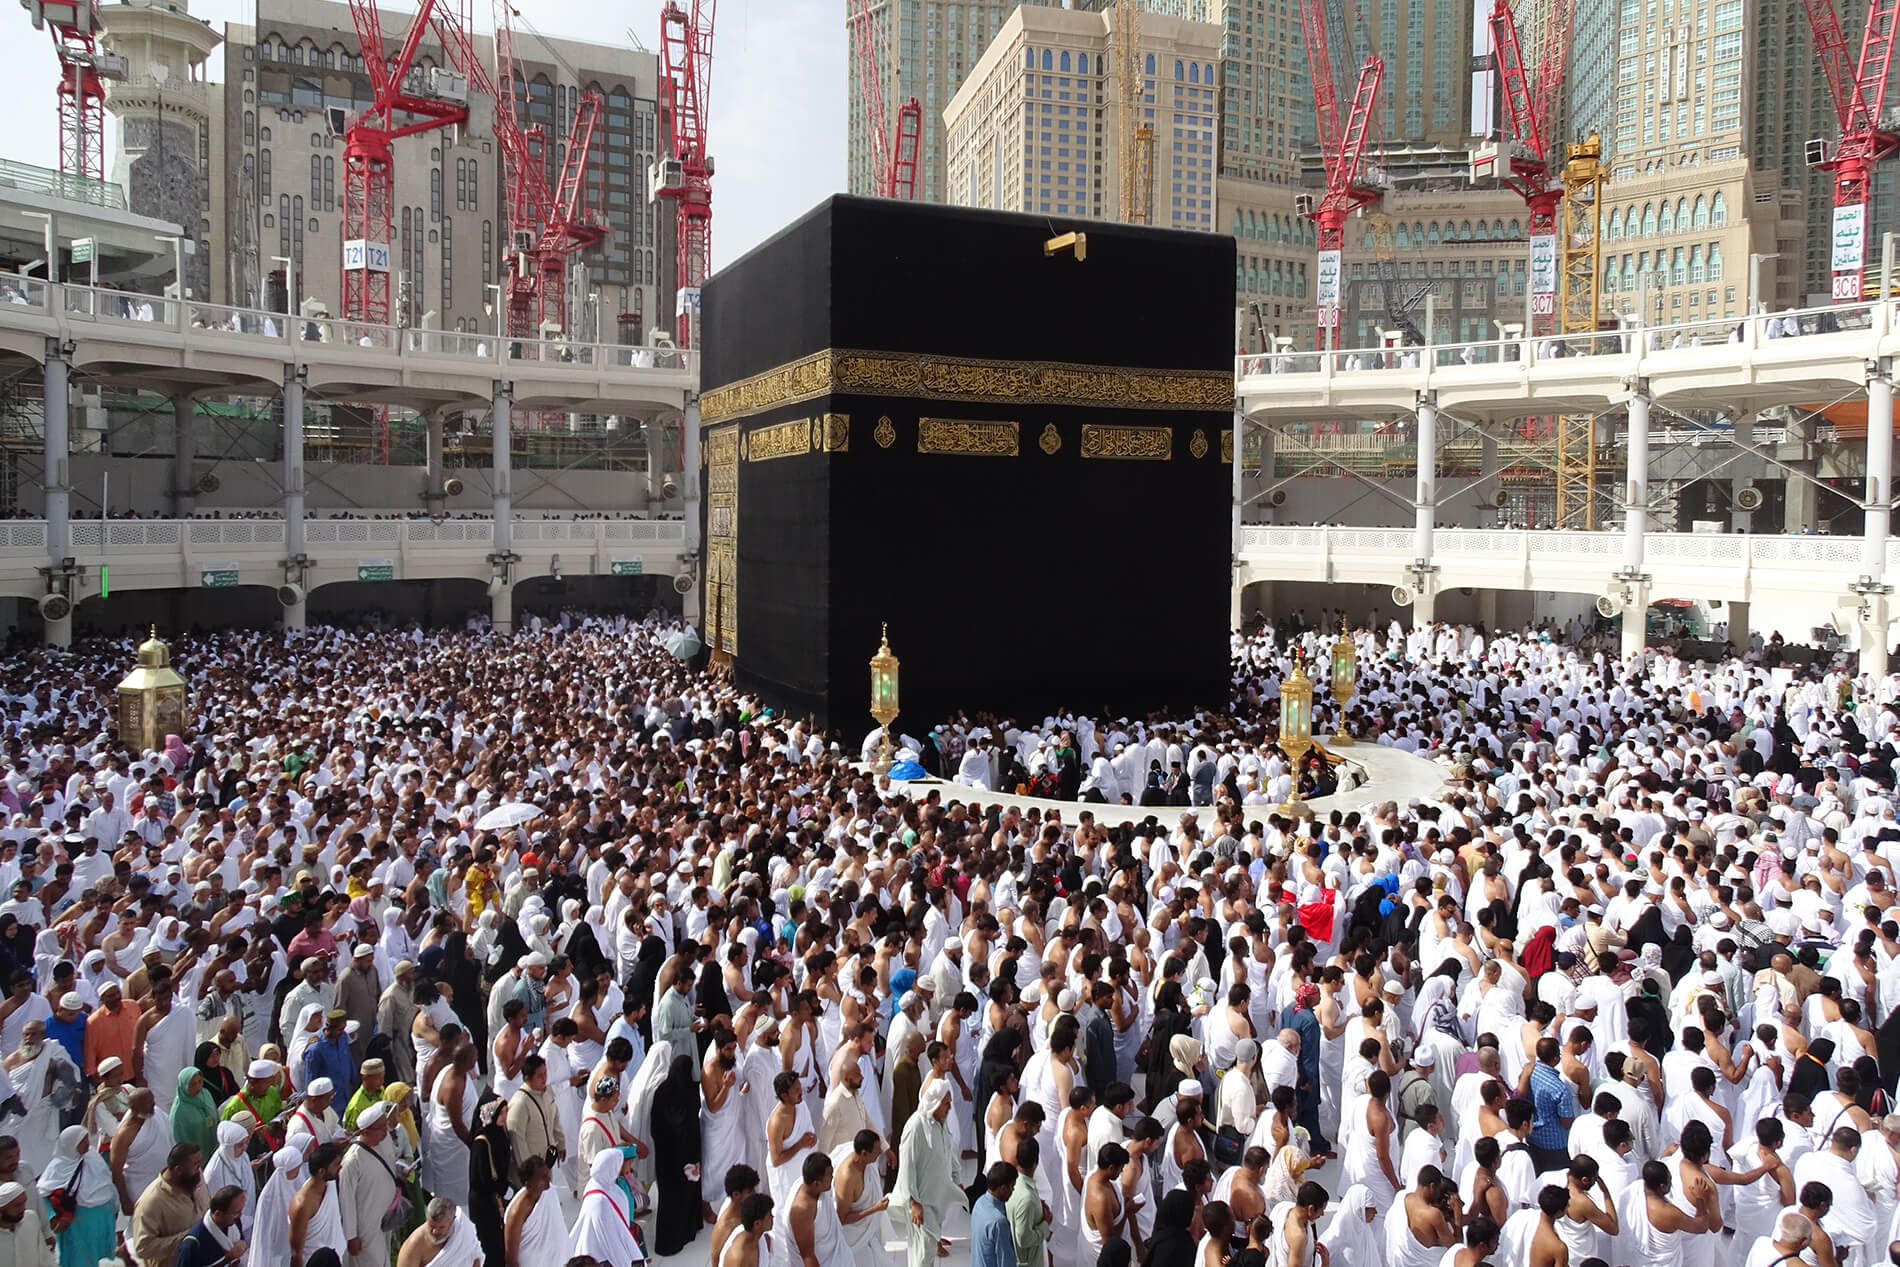 Smart Hajj initiative introduced to improve pilgrim experience